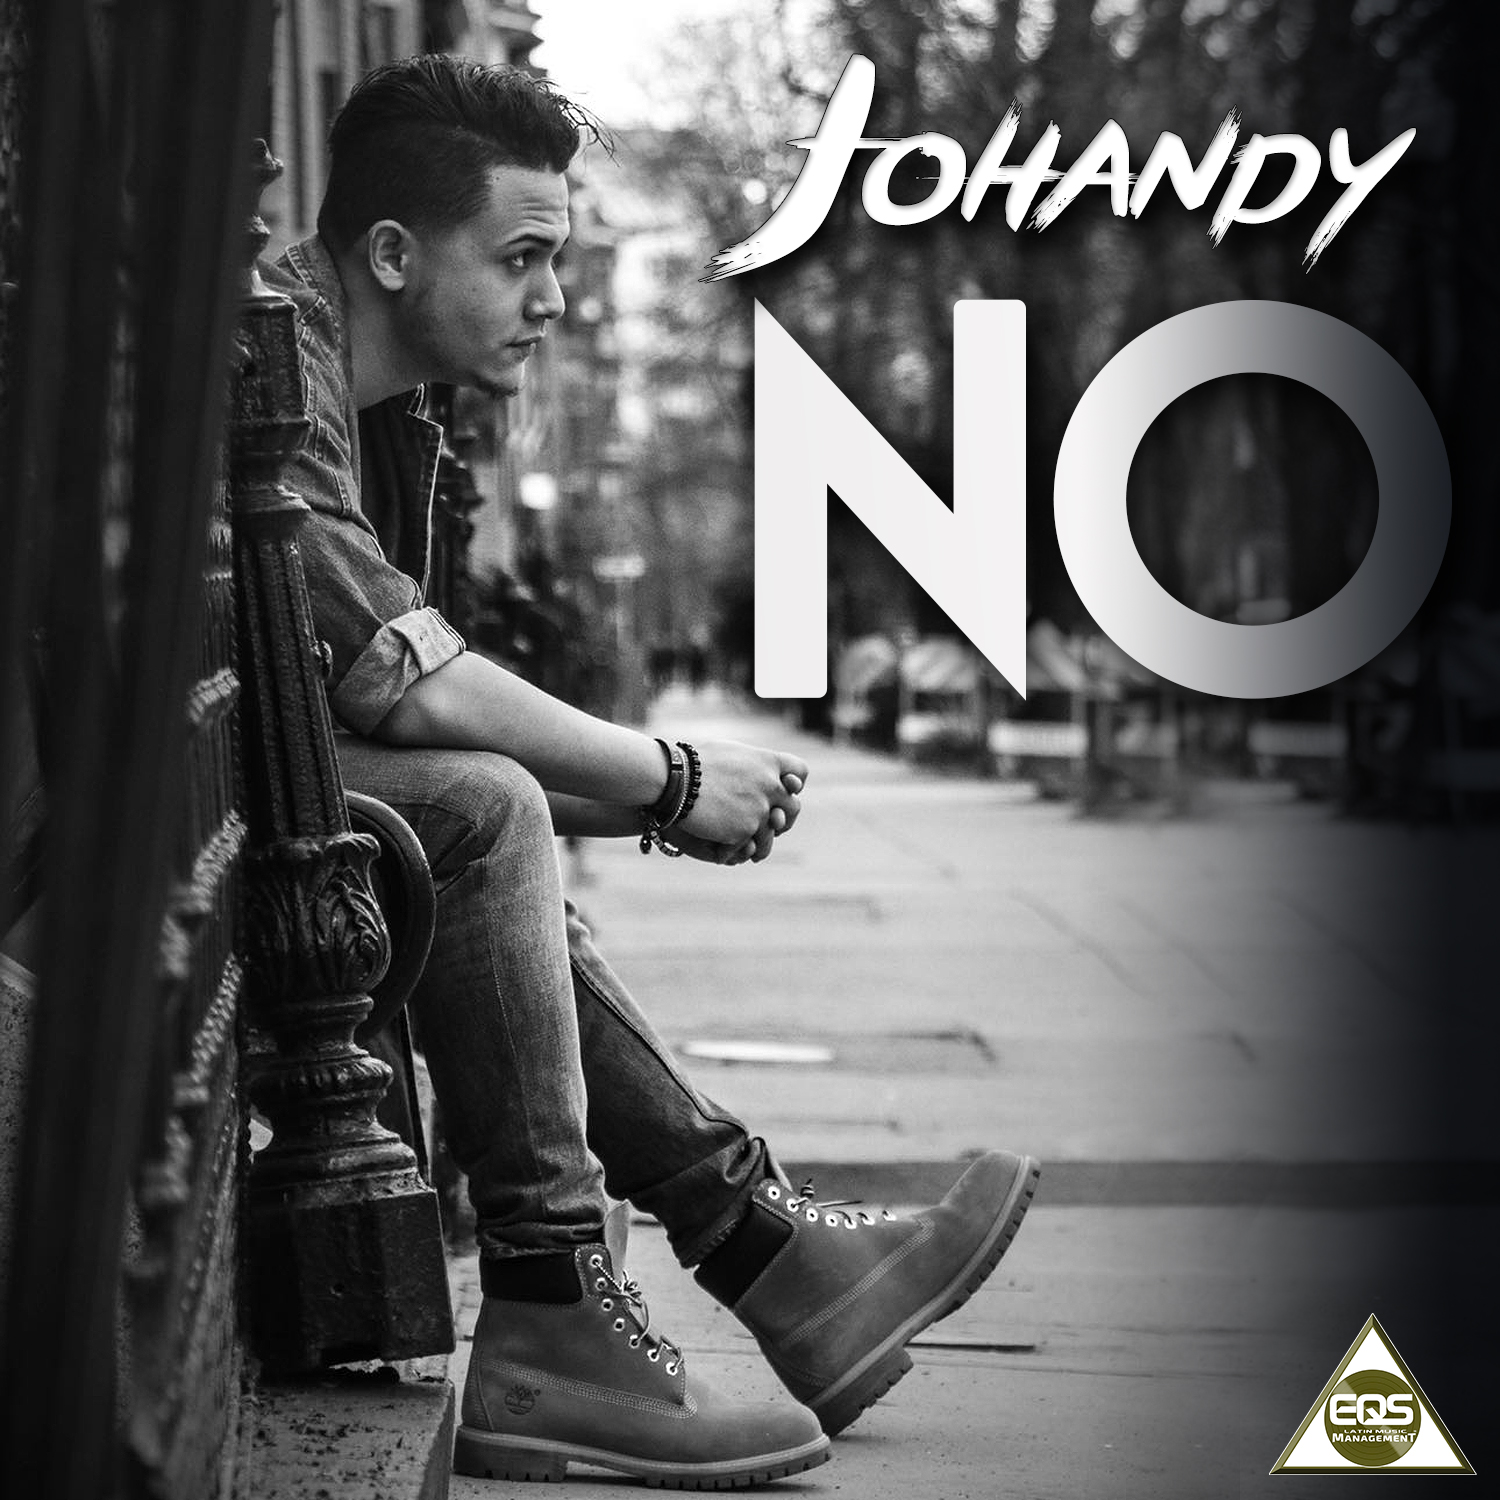 Johandy No image